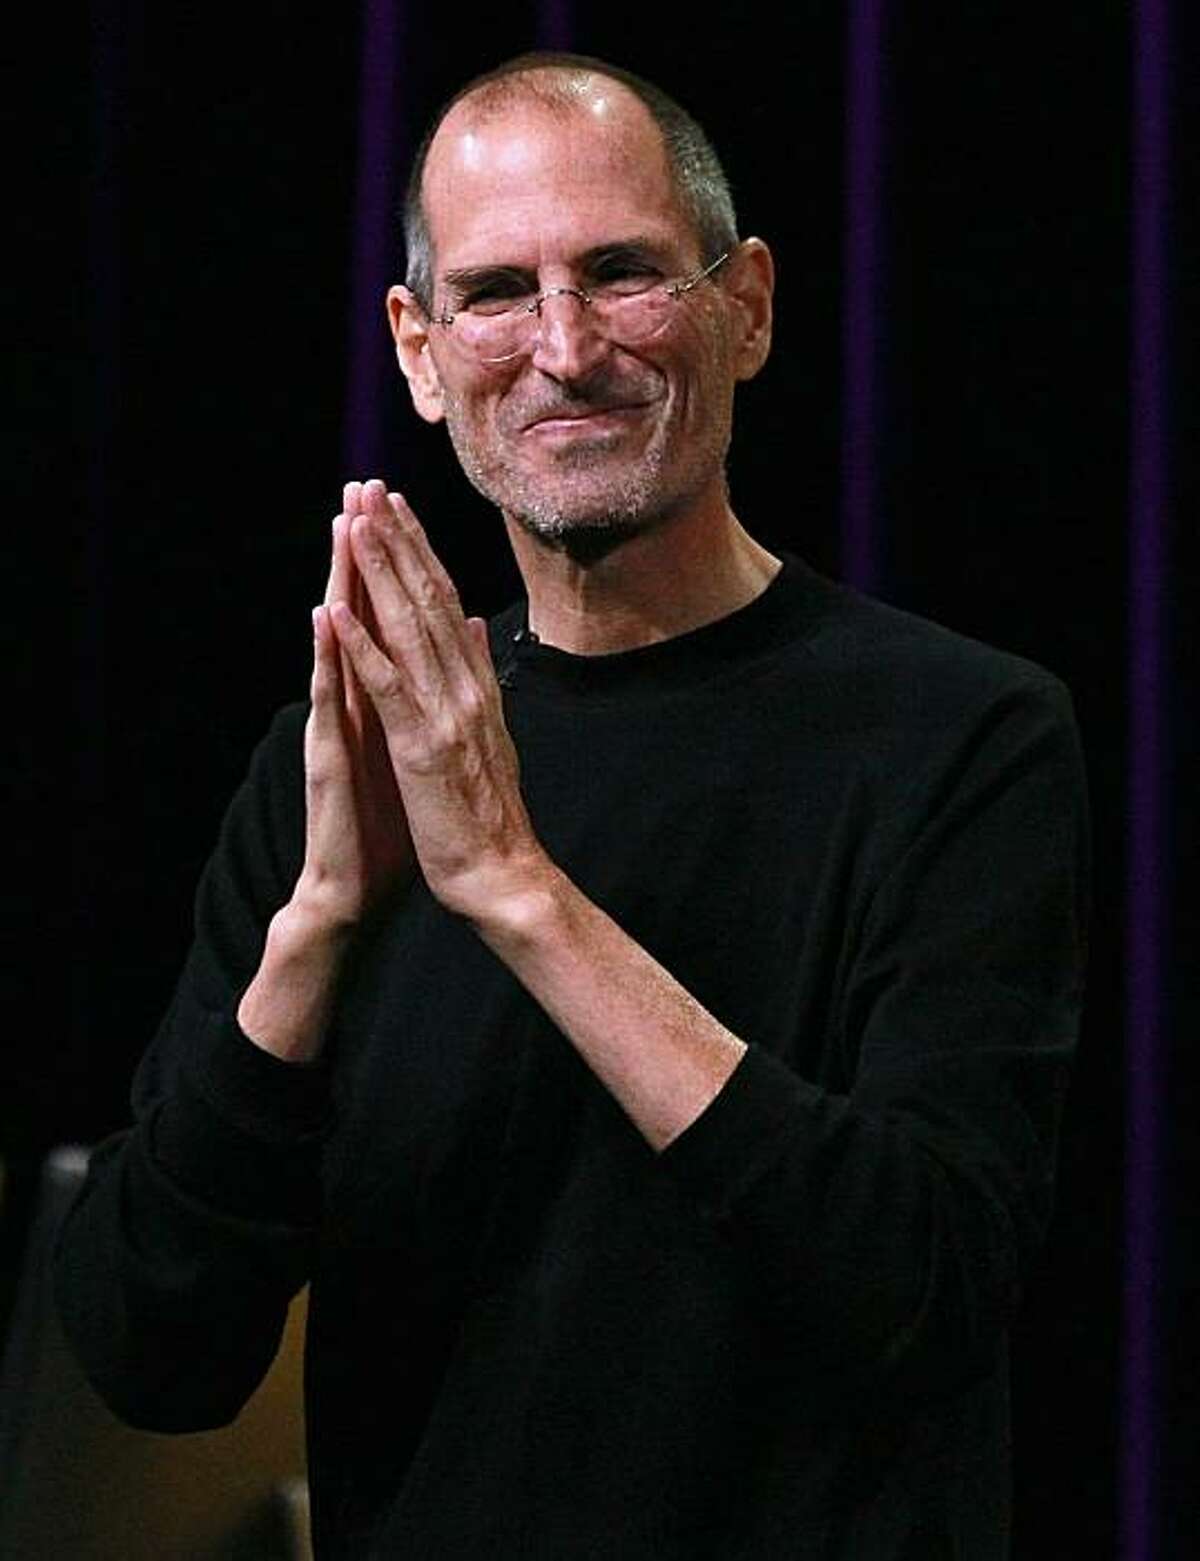 SAN FRANCISCO - SEPTEMBER 01: (FILE PHOTO) Apple CEO Steve Jobs speaks at an Apple Special Event at the Yerba Buena Center for the Arts September 1, 2010 in San Francisco, California. Steve Jobs announced on January 17, 2011 that the Apple board has granted him a medical leave of absence.